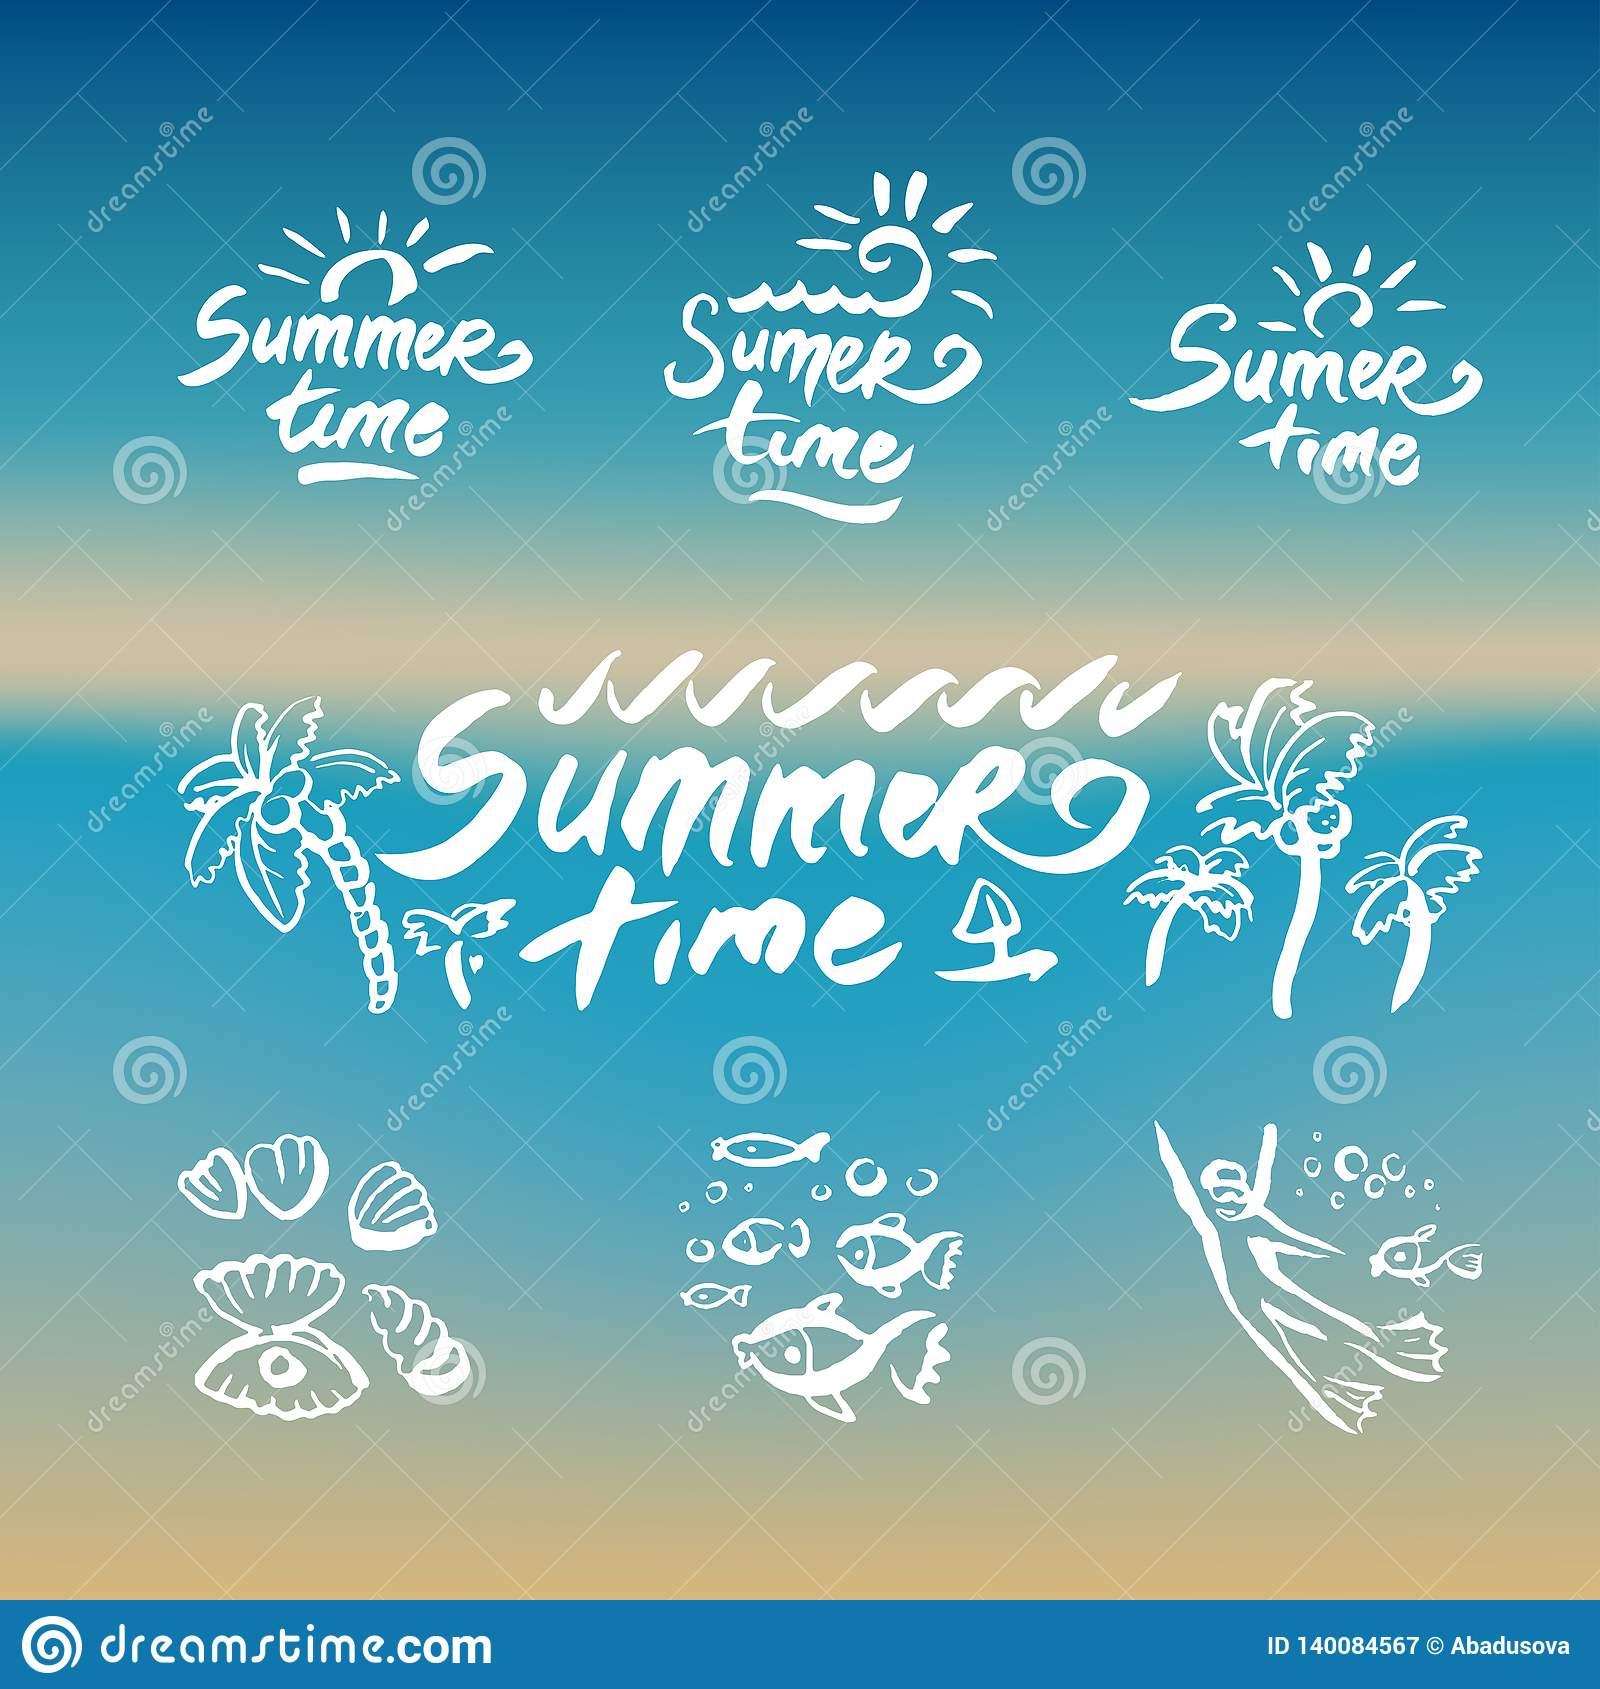 Abstract beach waves design on the theme of summer delights concept organization of beach parties and vector logo design